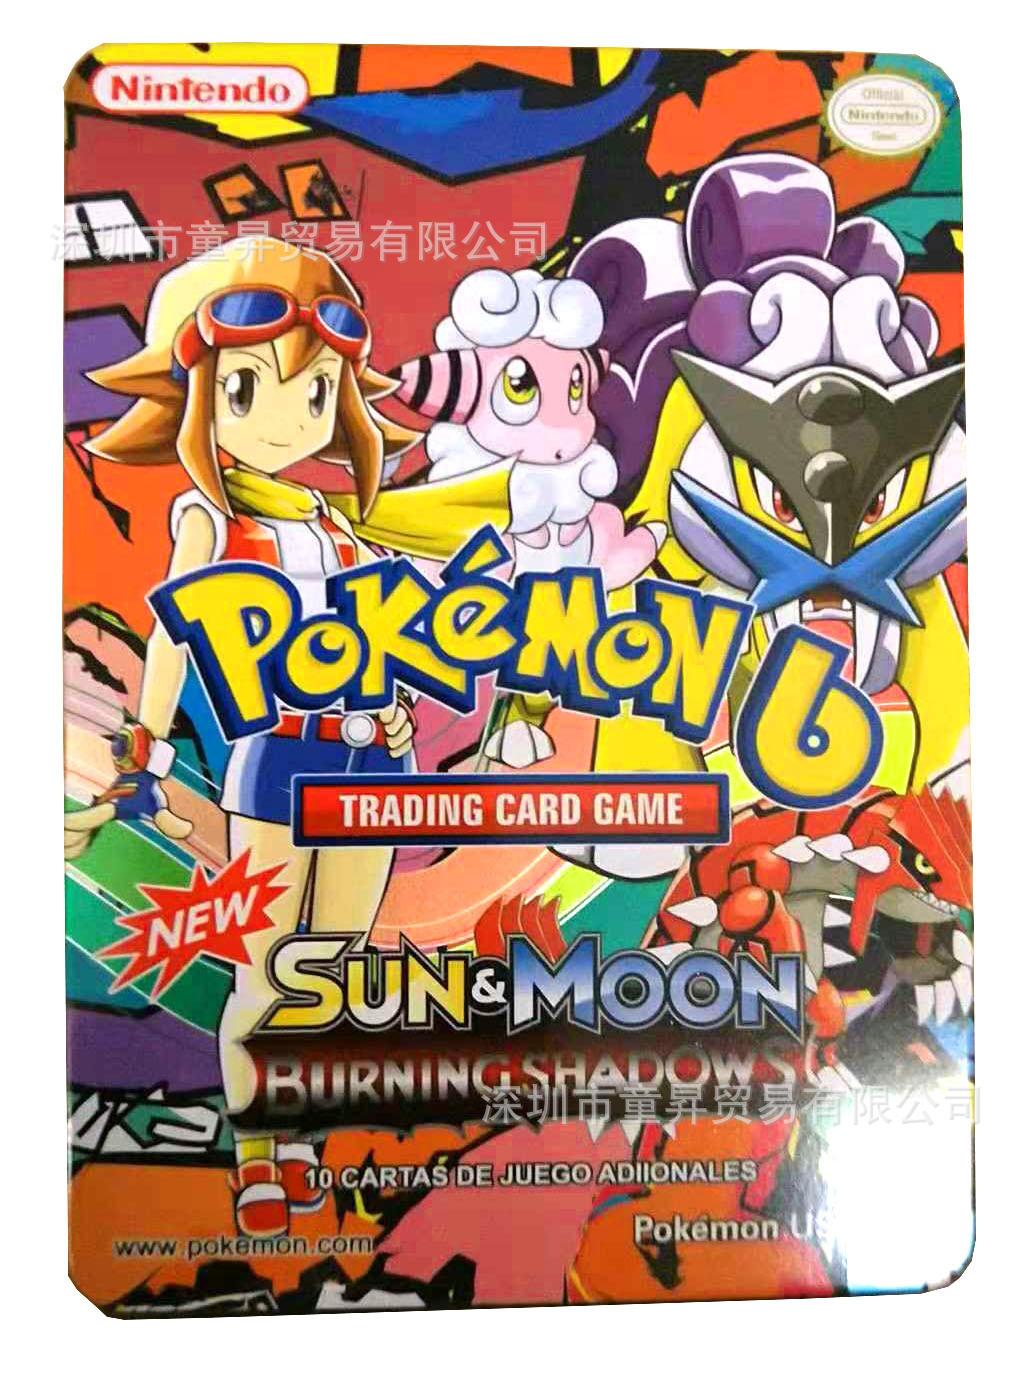 70pcs/set Pokemon Big Box 15MC*20.5CM TAKARA TOMY Toys Hobbies Hobby Collectibles Game Collection Anime Cards for Children